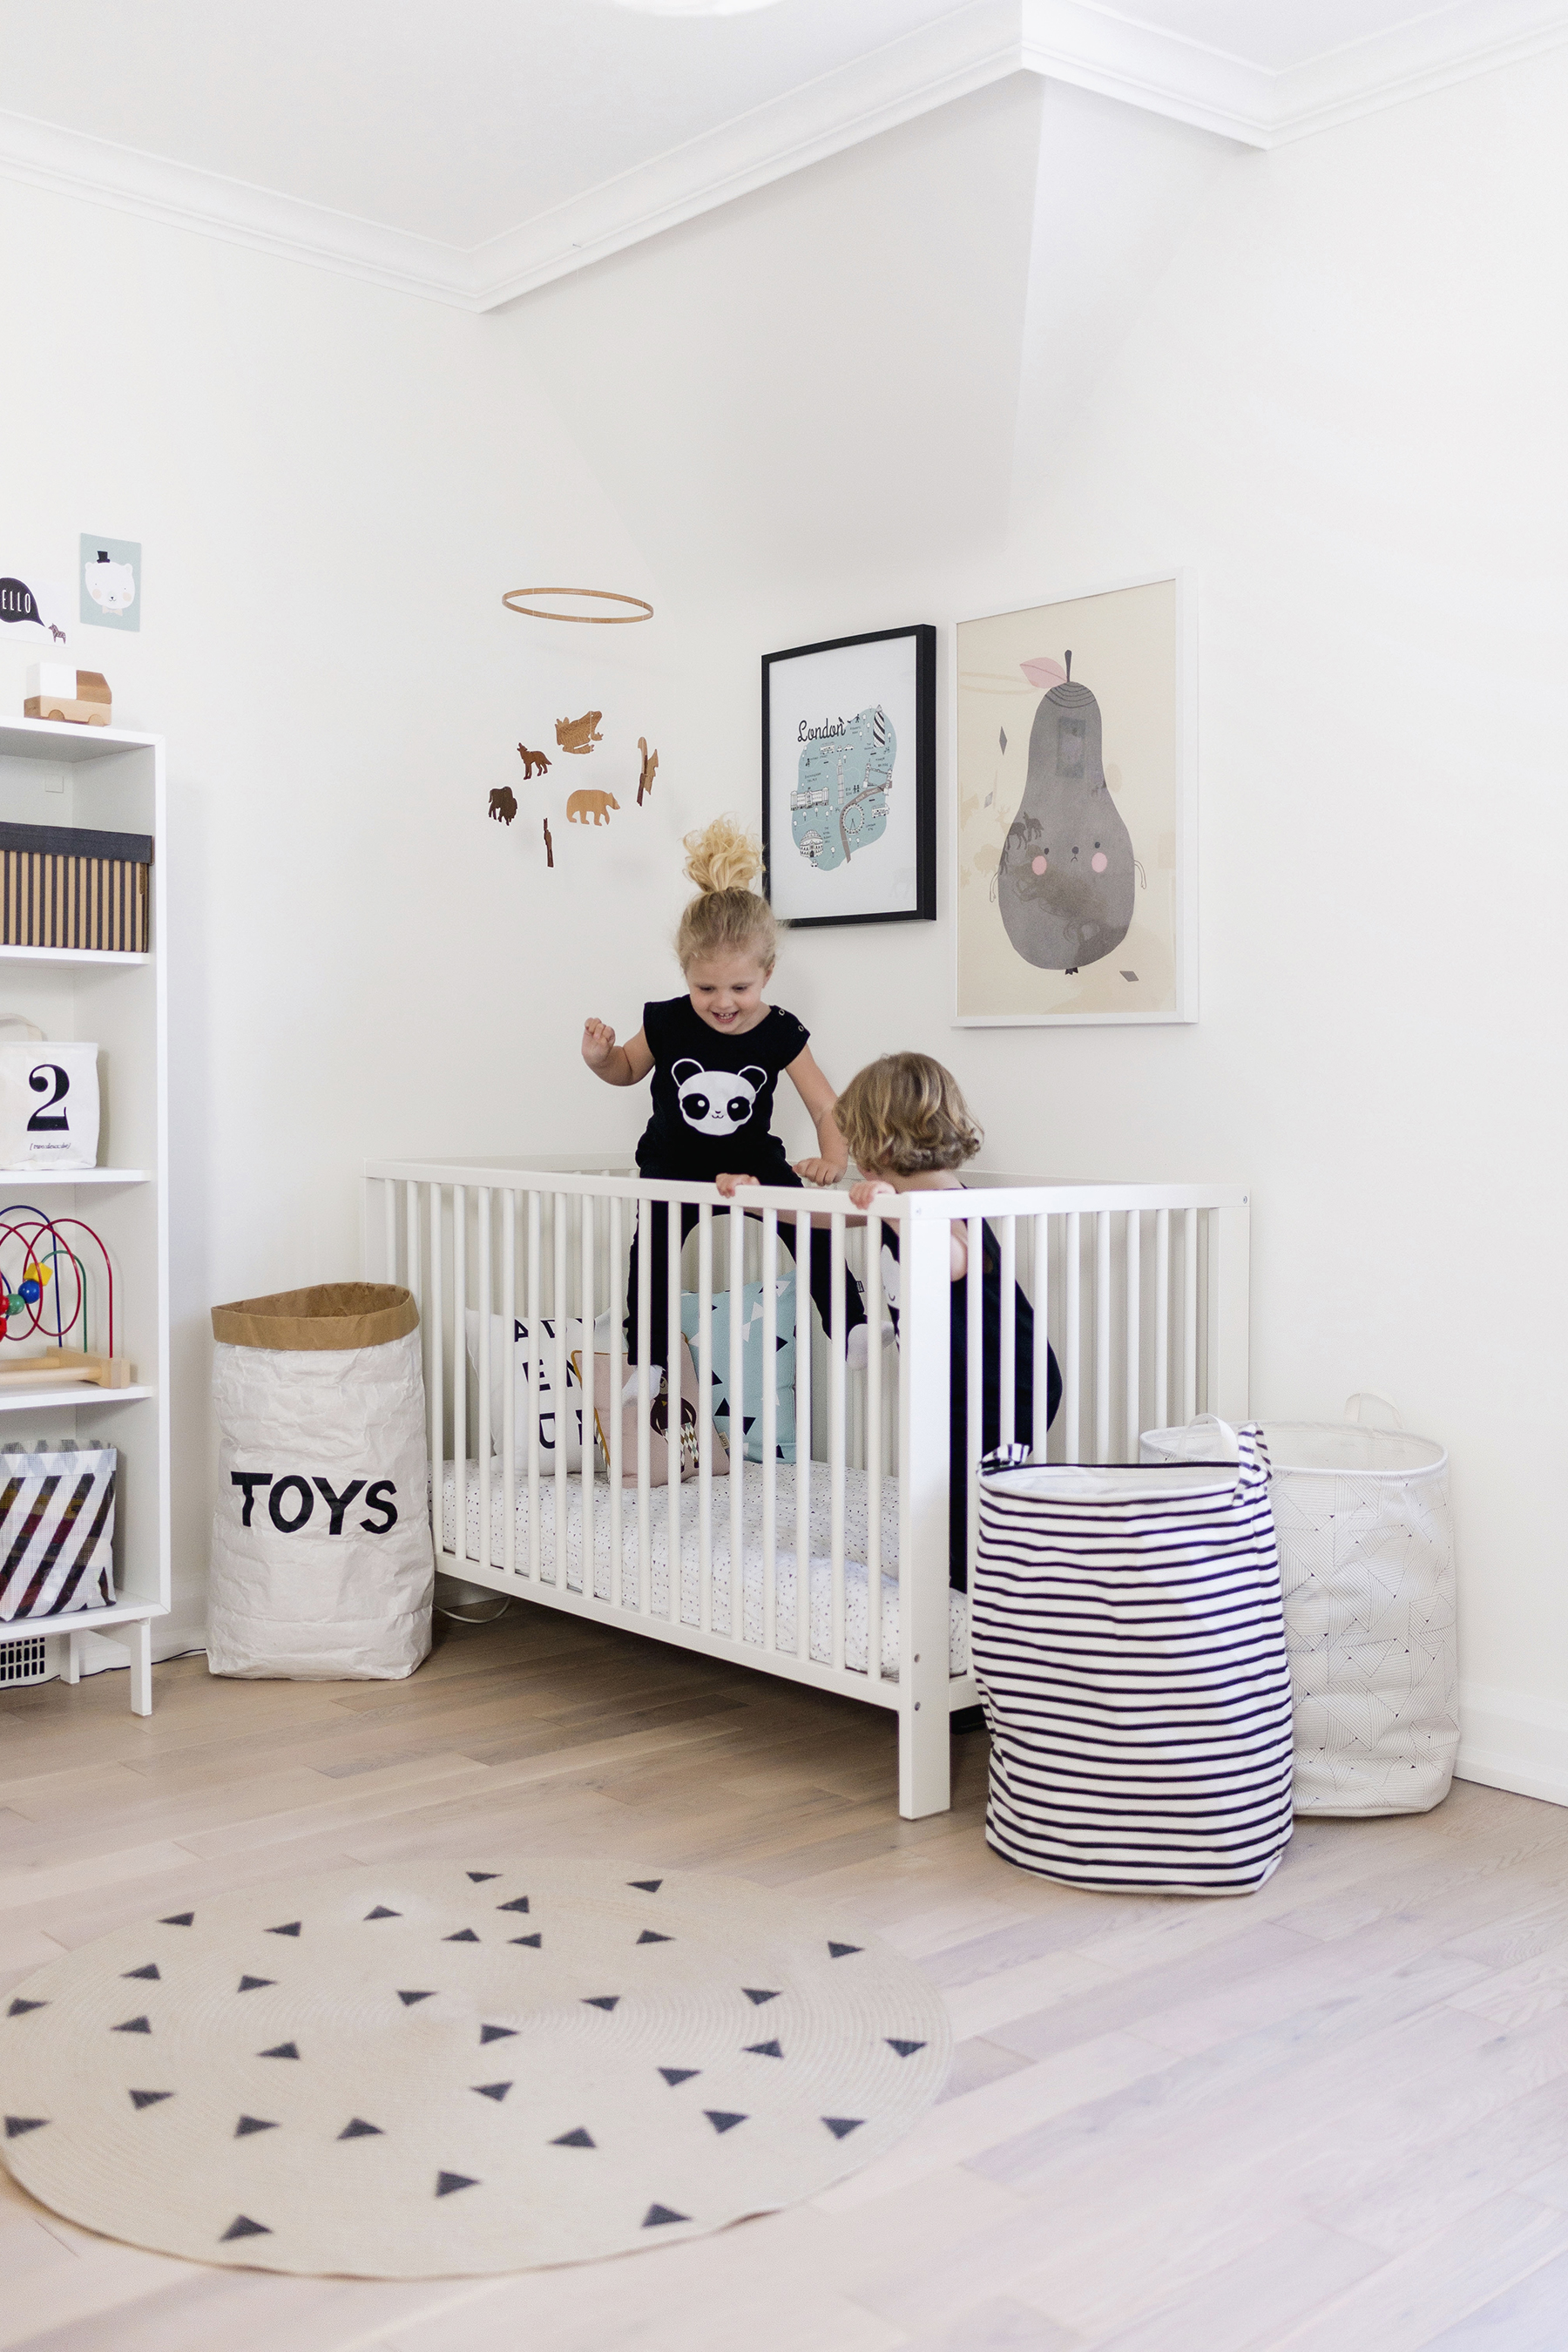 Modern, pastel Scandinavian-inspired nursery + shared kids room | Happy Grey Lucky